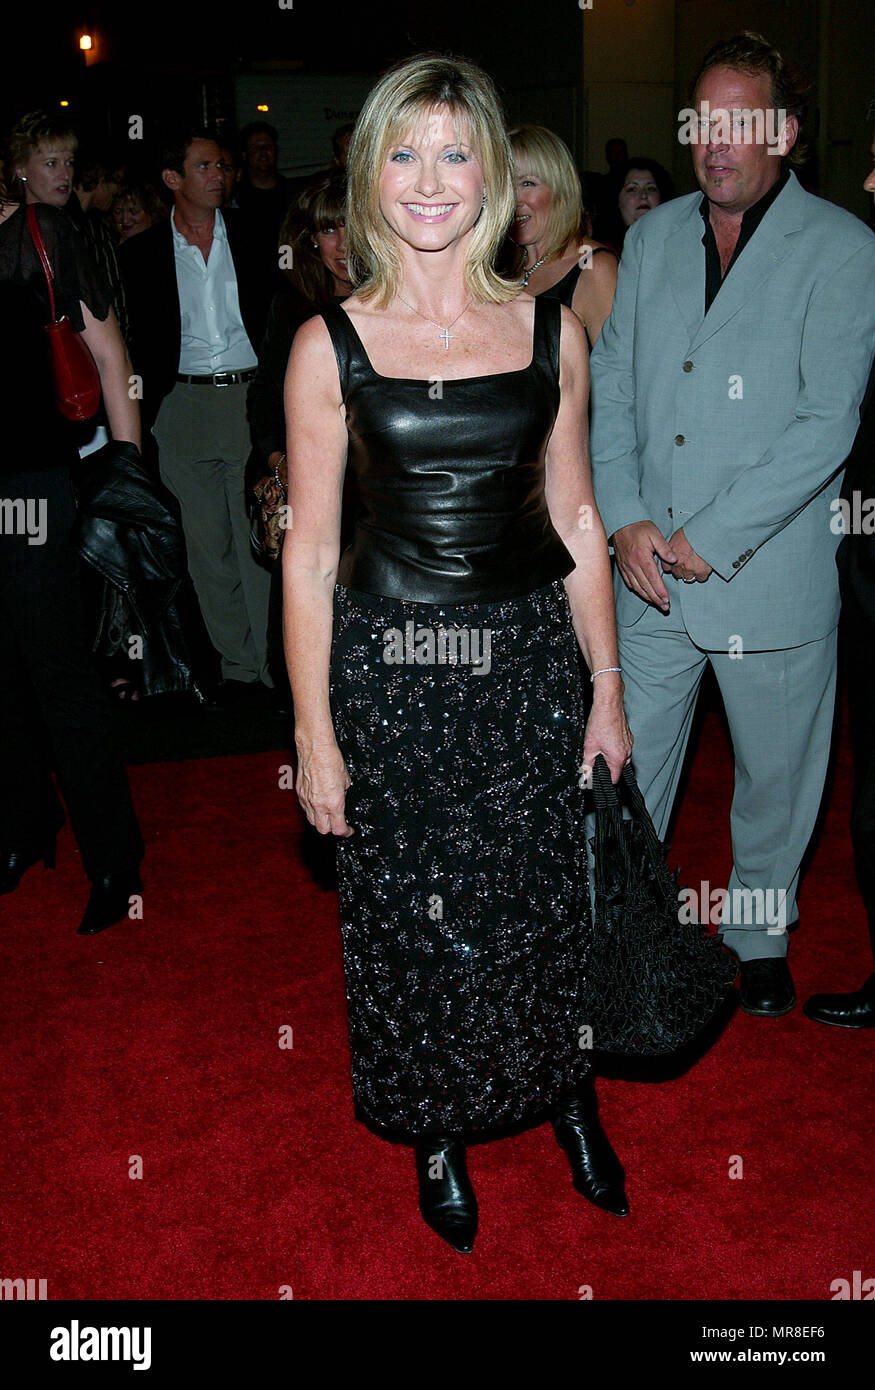 Olivia Newton Jones Arriving At The Party For Paramount DVD Release Of 70 Movies Grease Saturday Night Fever Flashdance Footloose Urban Cowboy